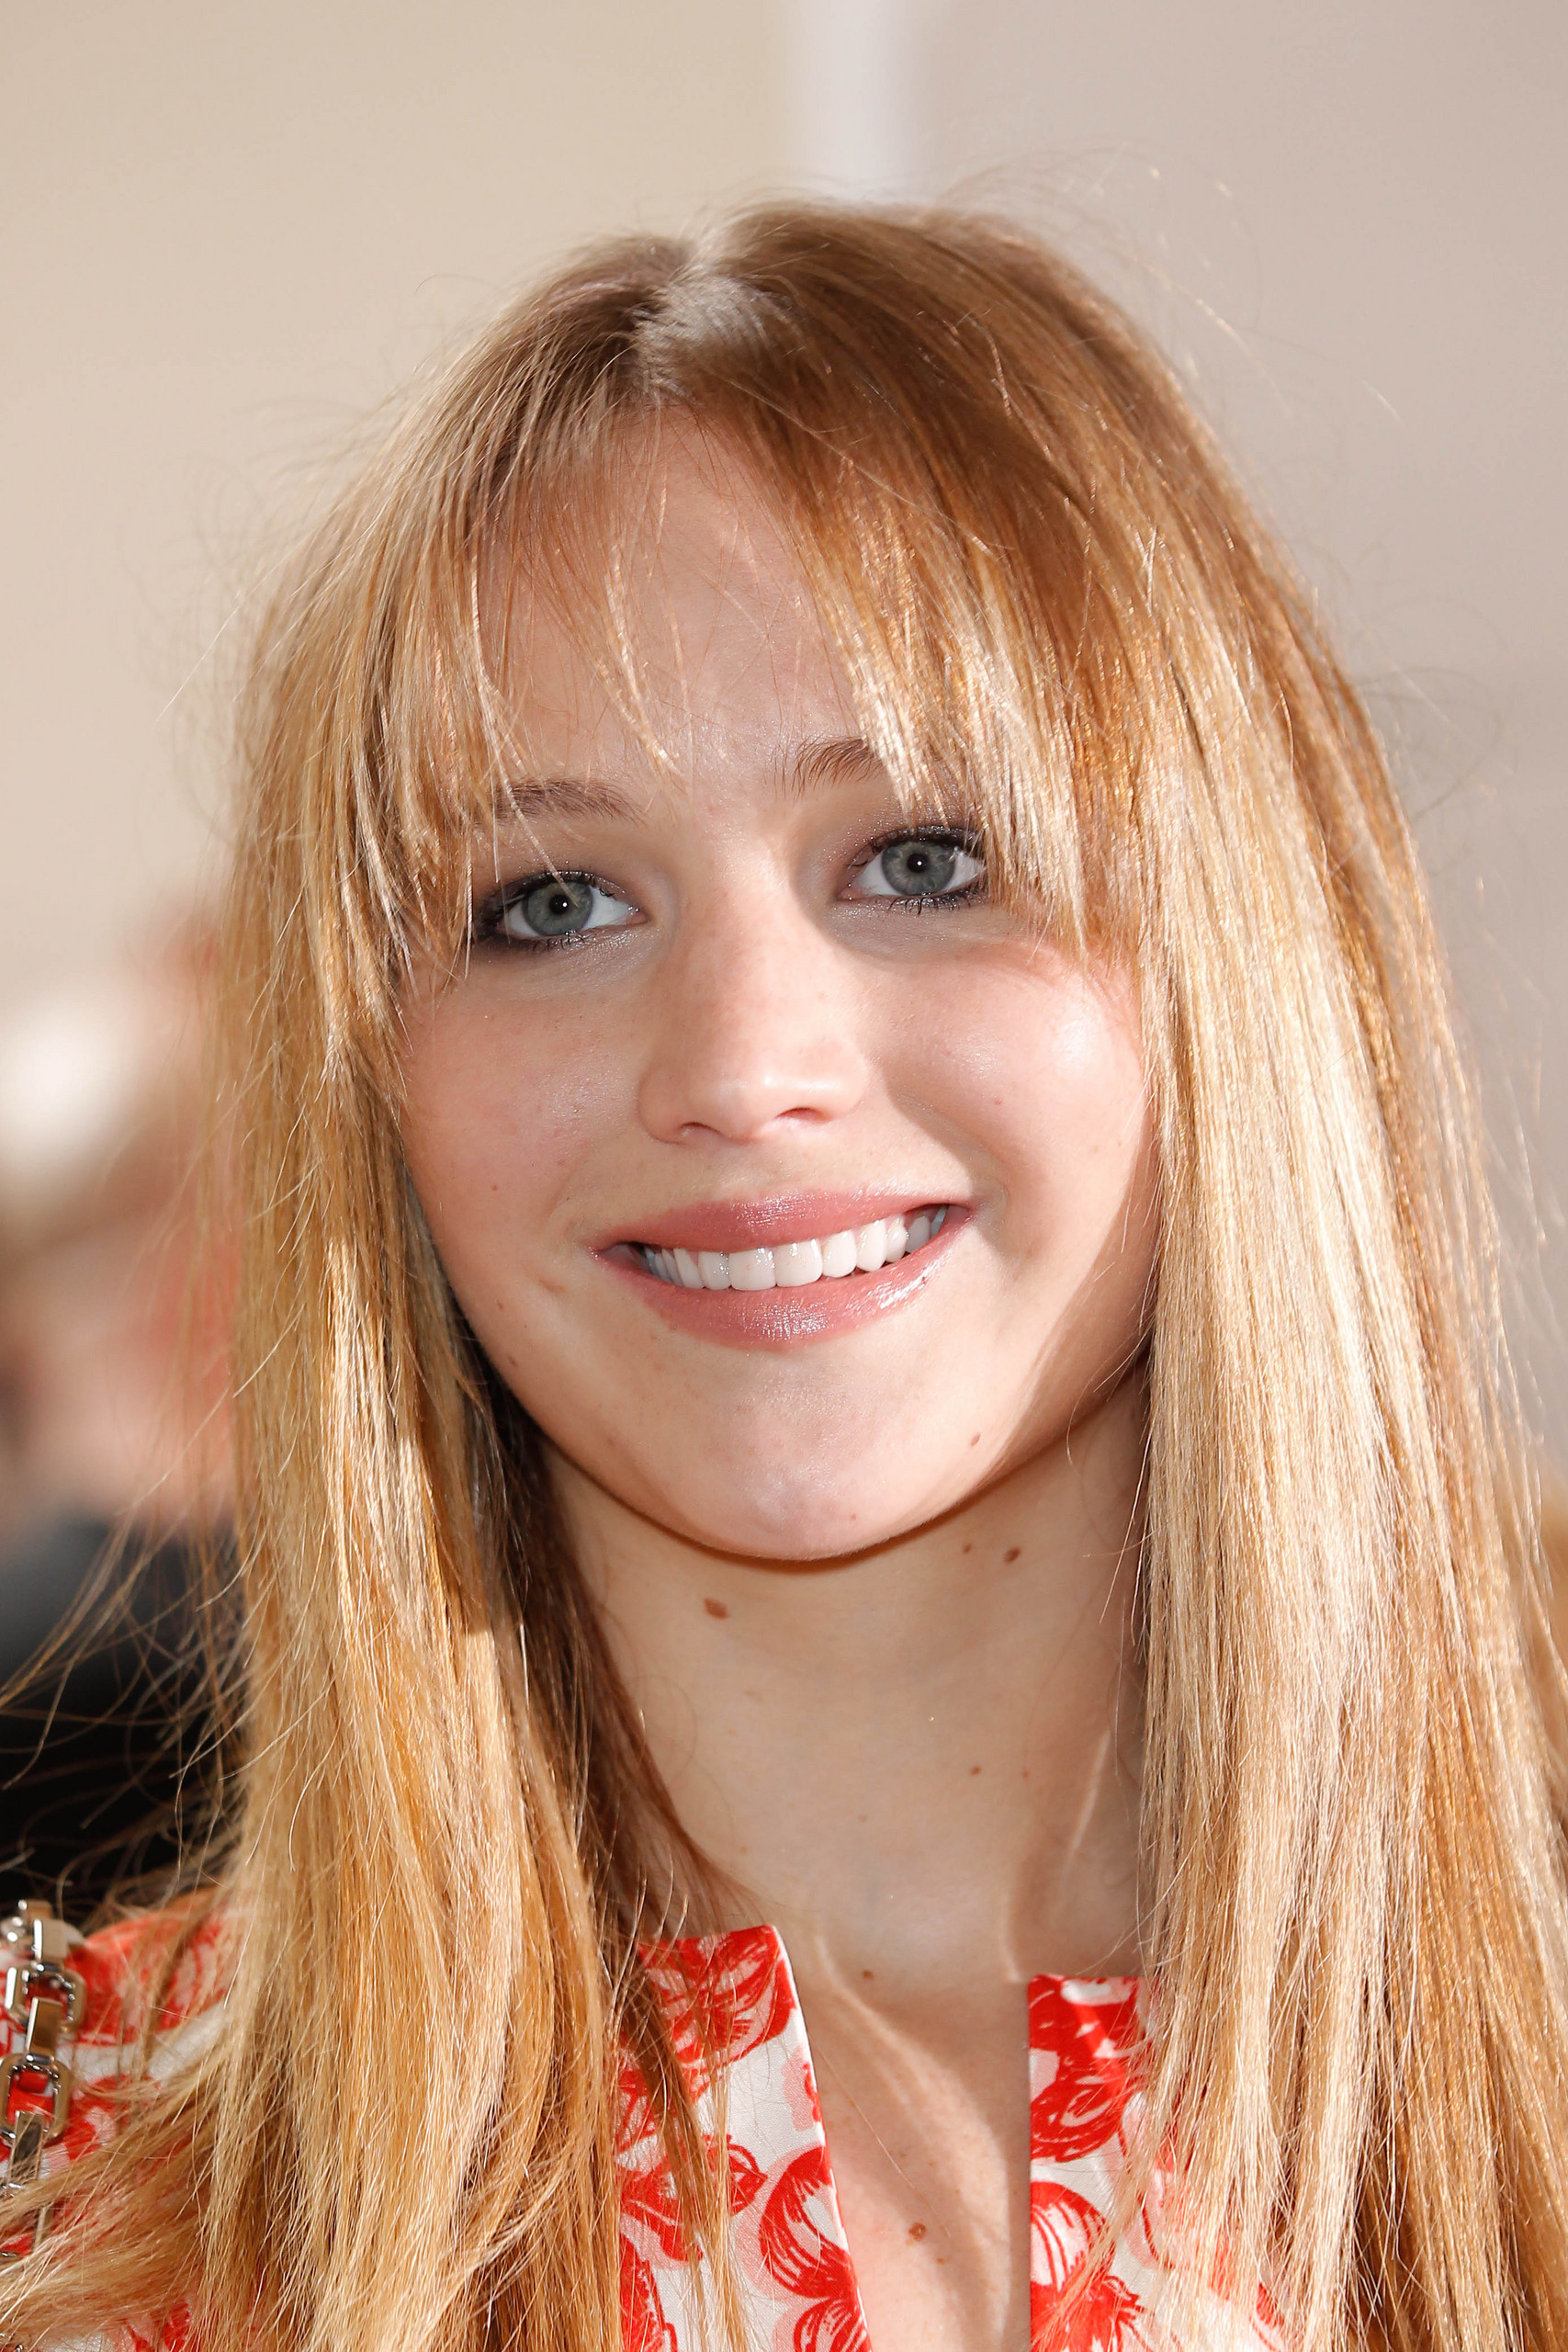 Jennifer at the Christian Dior Haute-Couture show - Inside - 02/07/12.